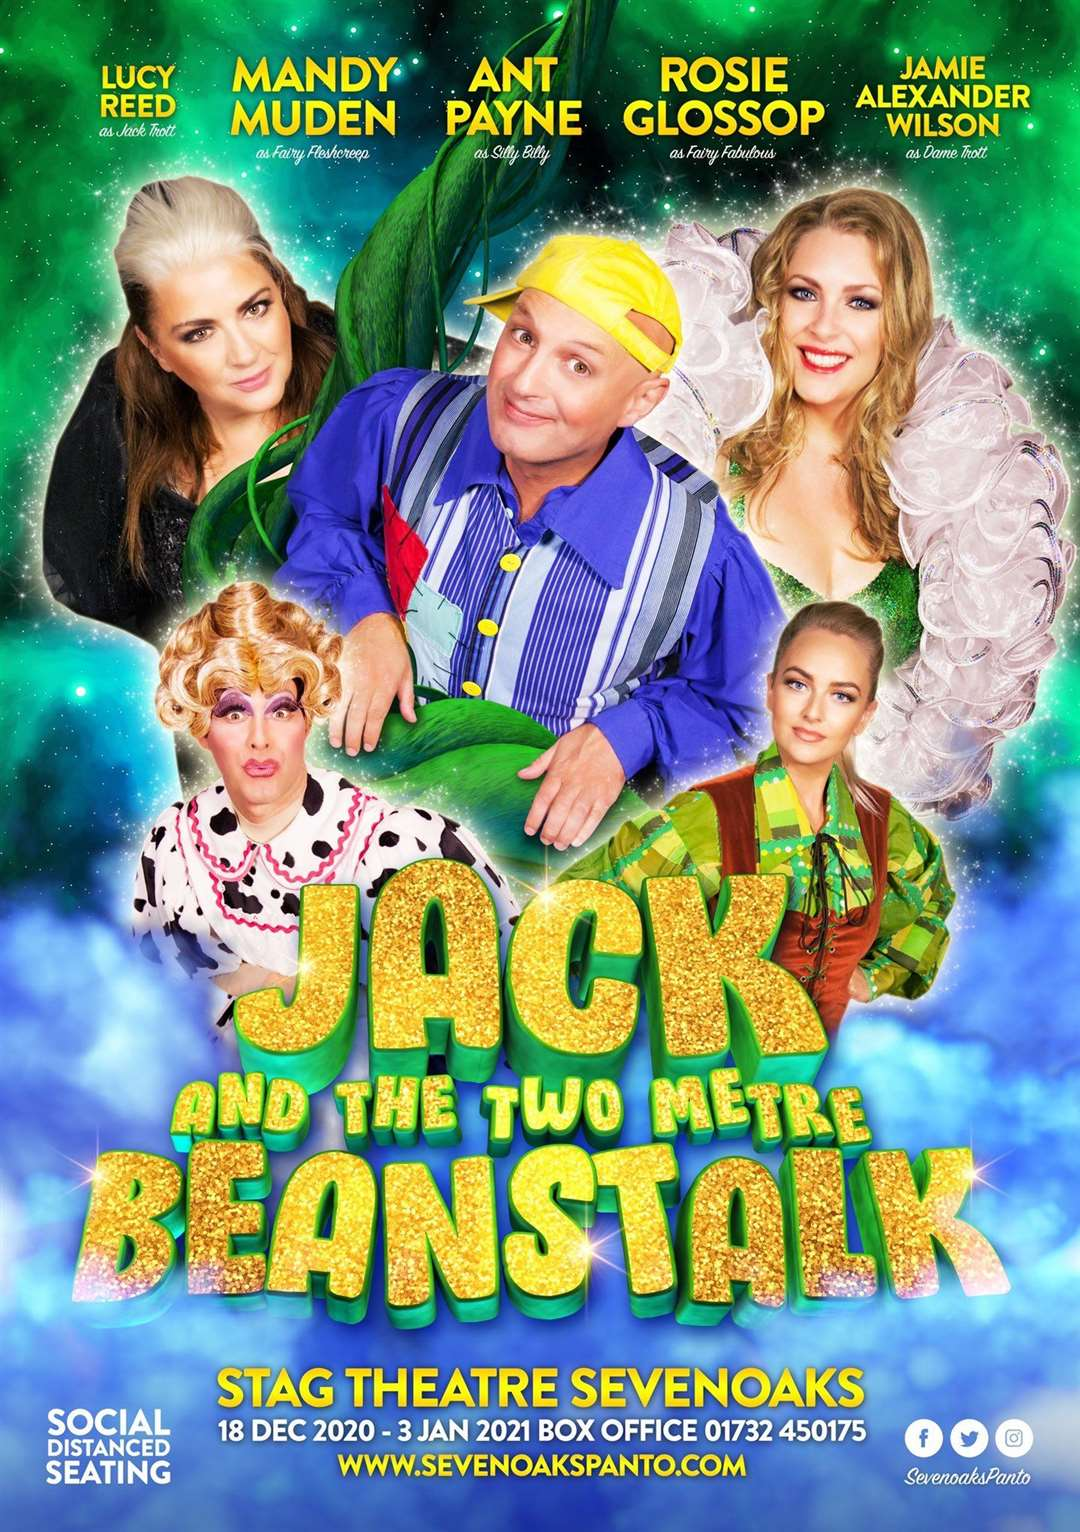 Jack And The Beanstalk is coming to the Stag Theatre in Sevenoaks this Christmas